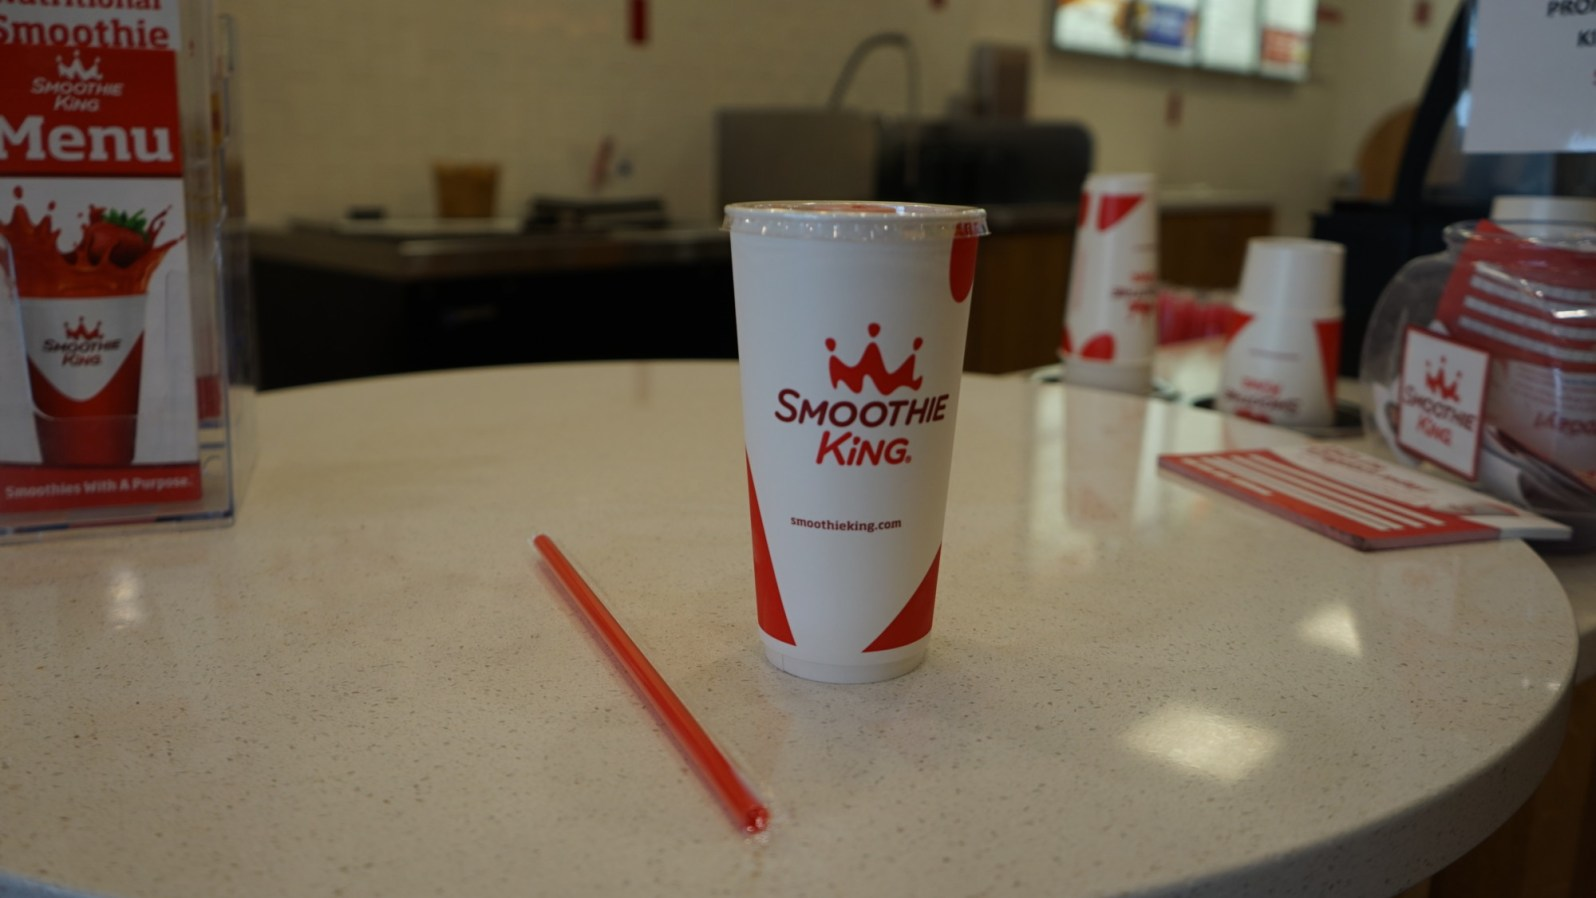 Smoothie King switched to paper cups about a year ago. (Credit: Roshan Nebhrajani/The New Tropic)